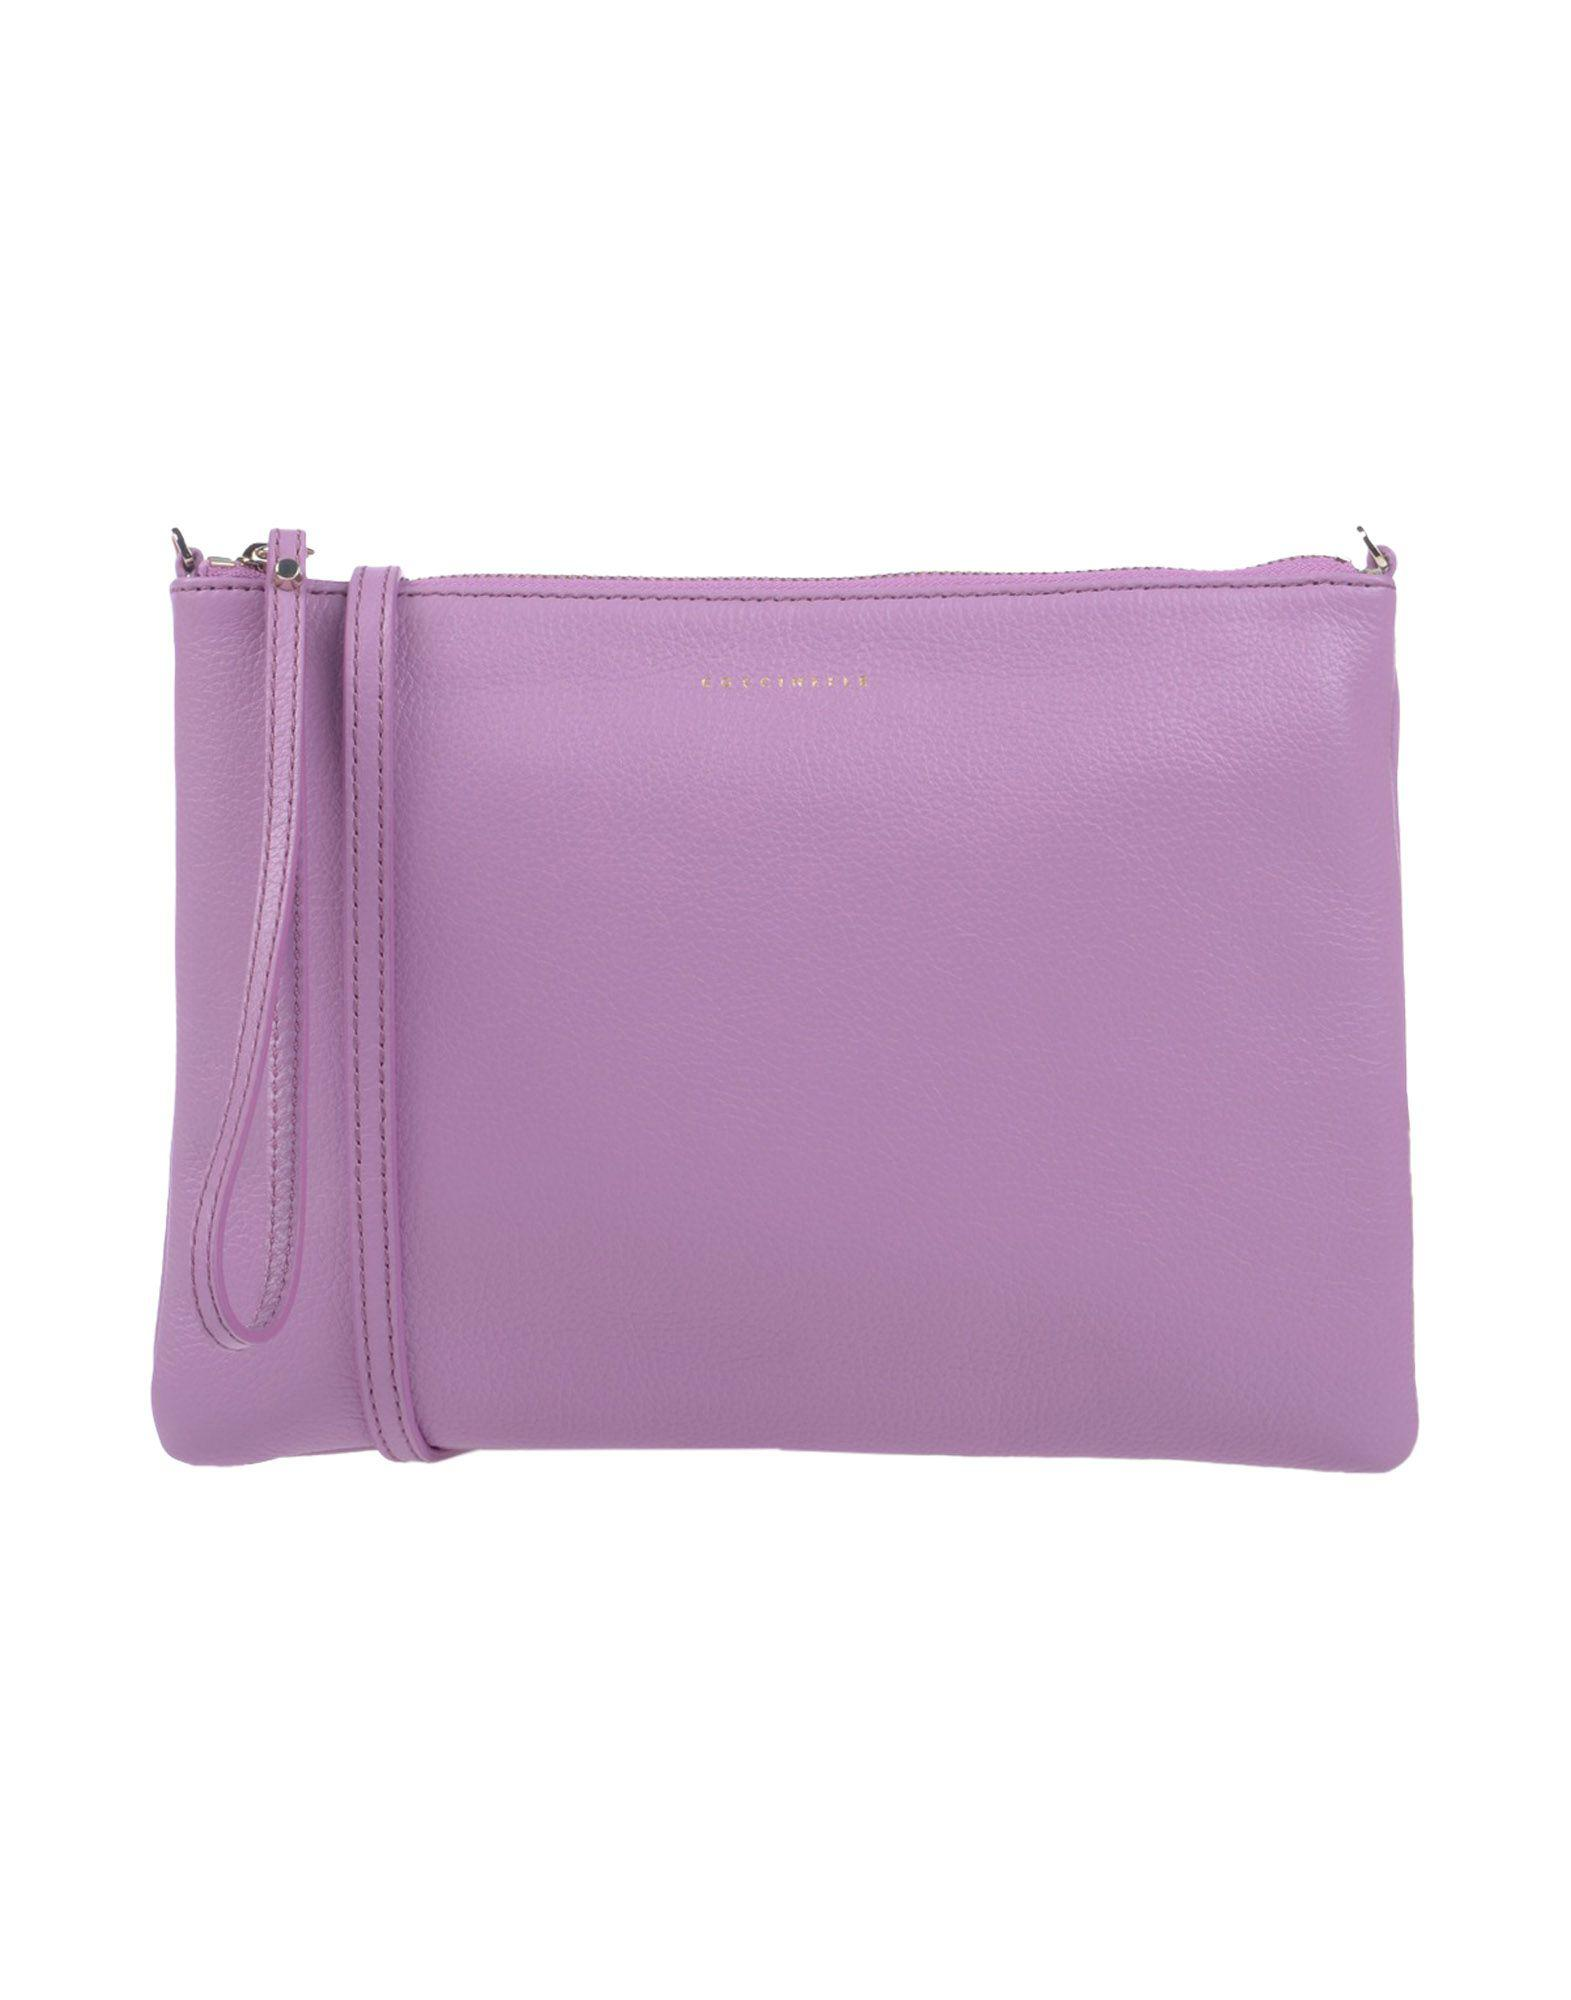 96af3ddd9 Lyst - Bolso de mano Coccinelle de color Morado